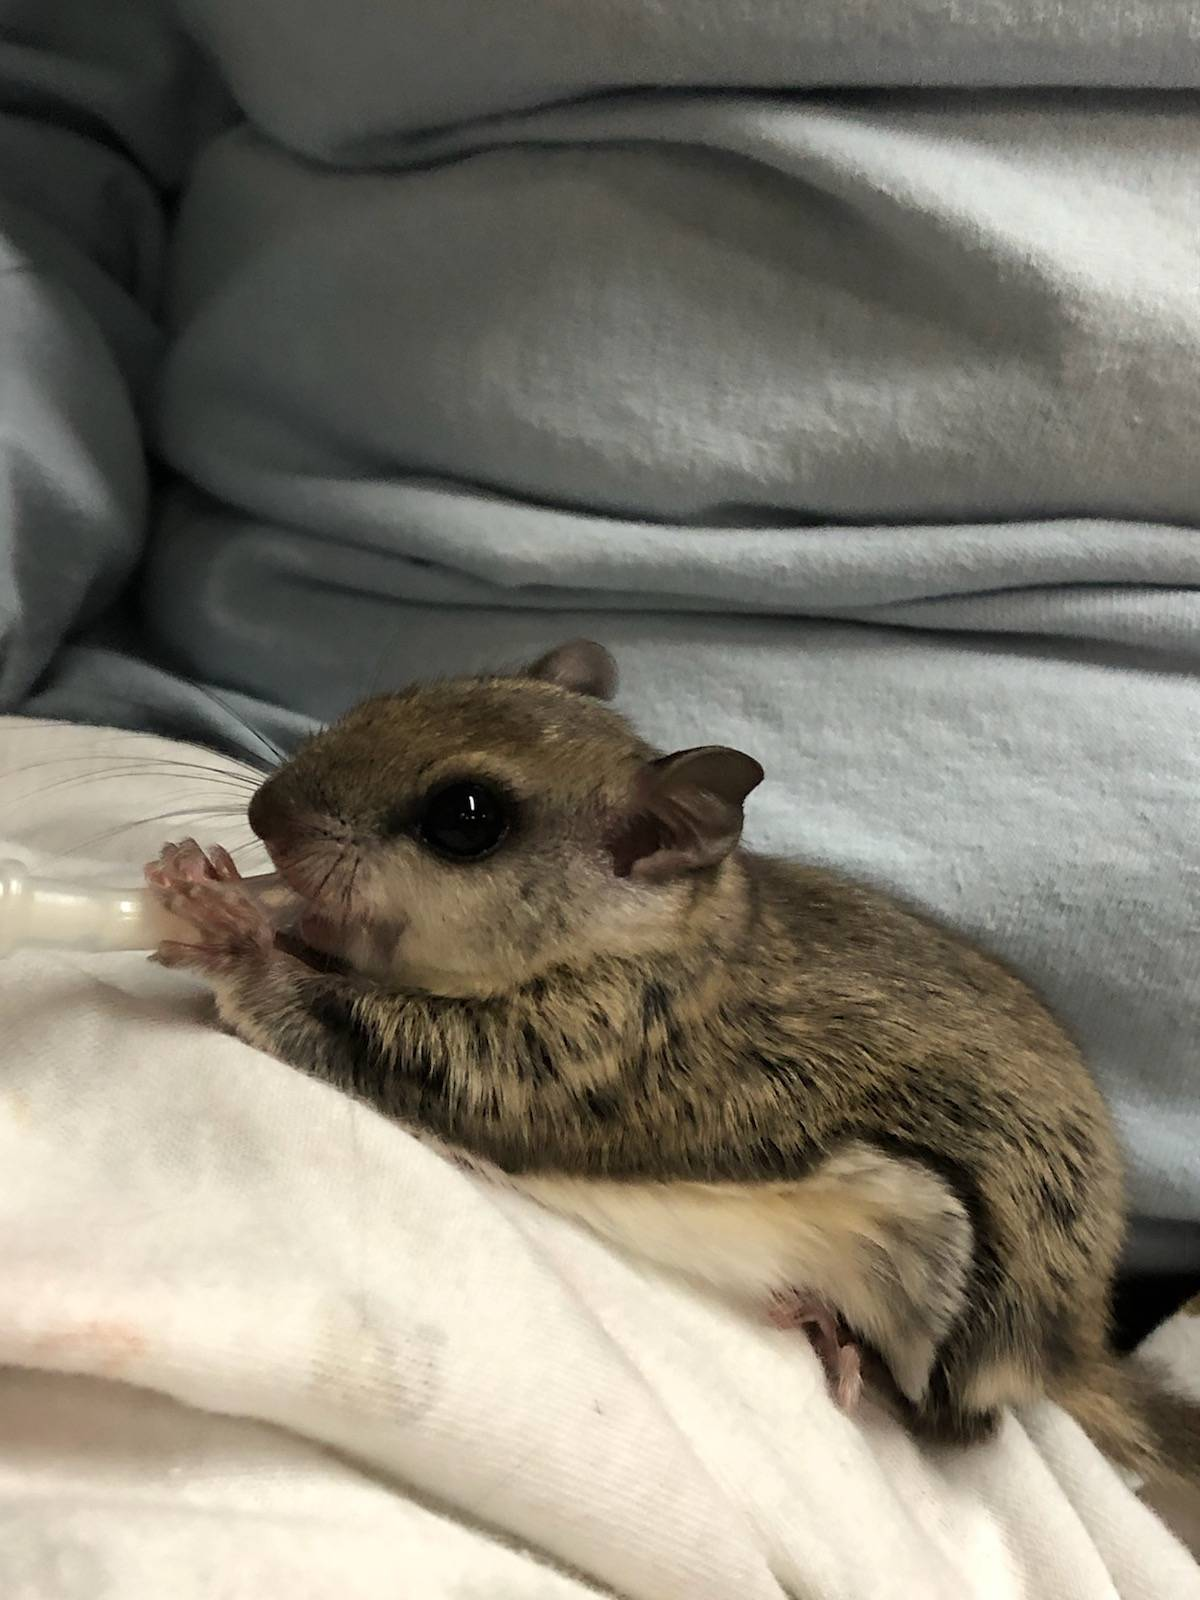 Juvenile Southern Flying Squirrel